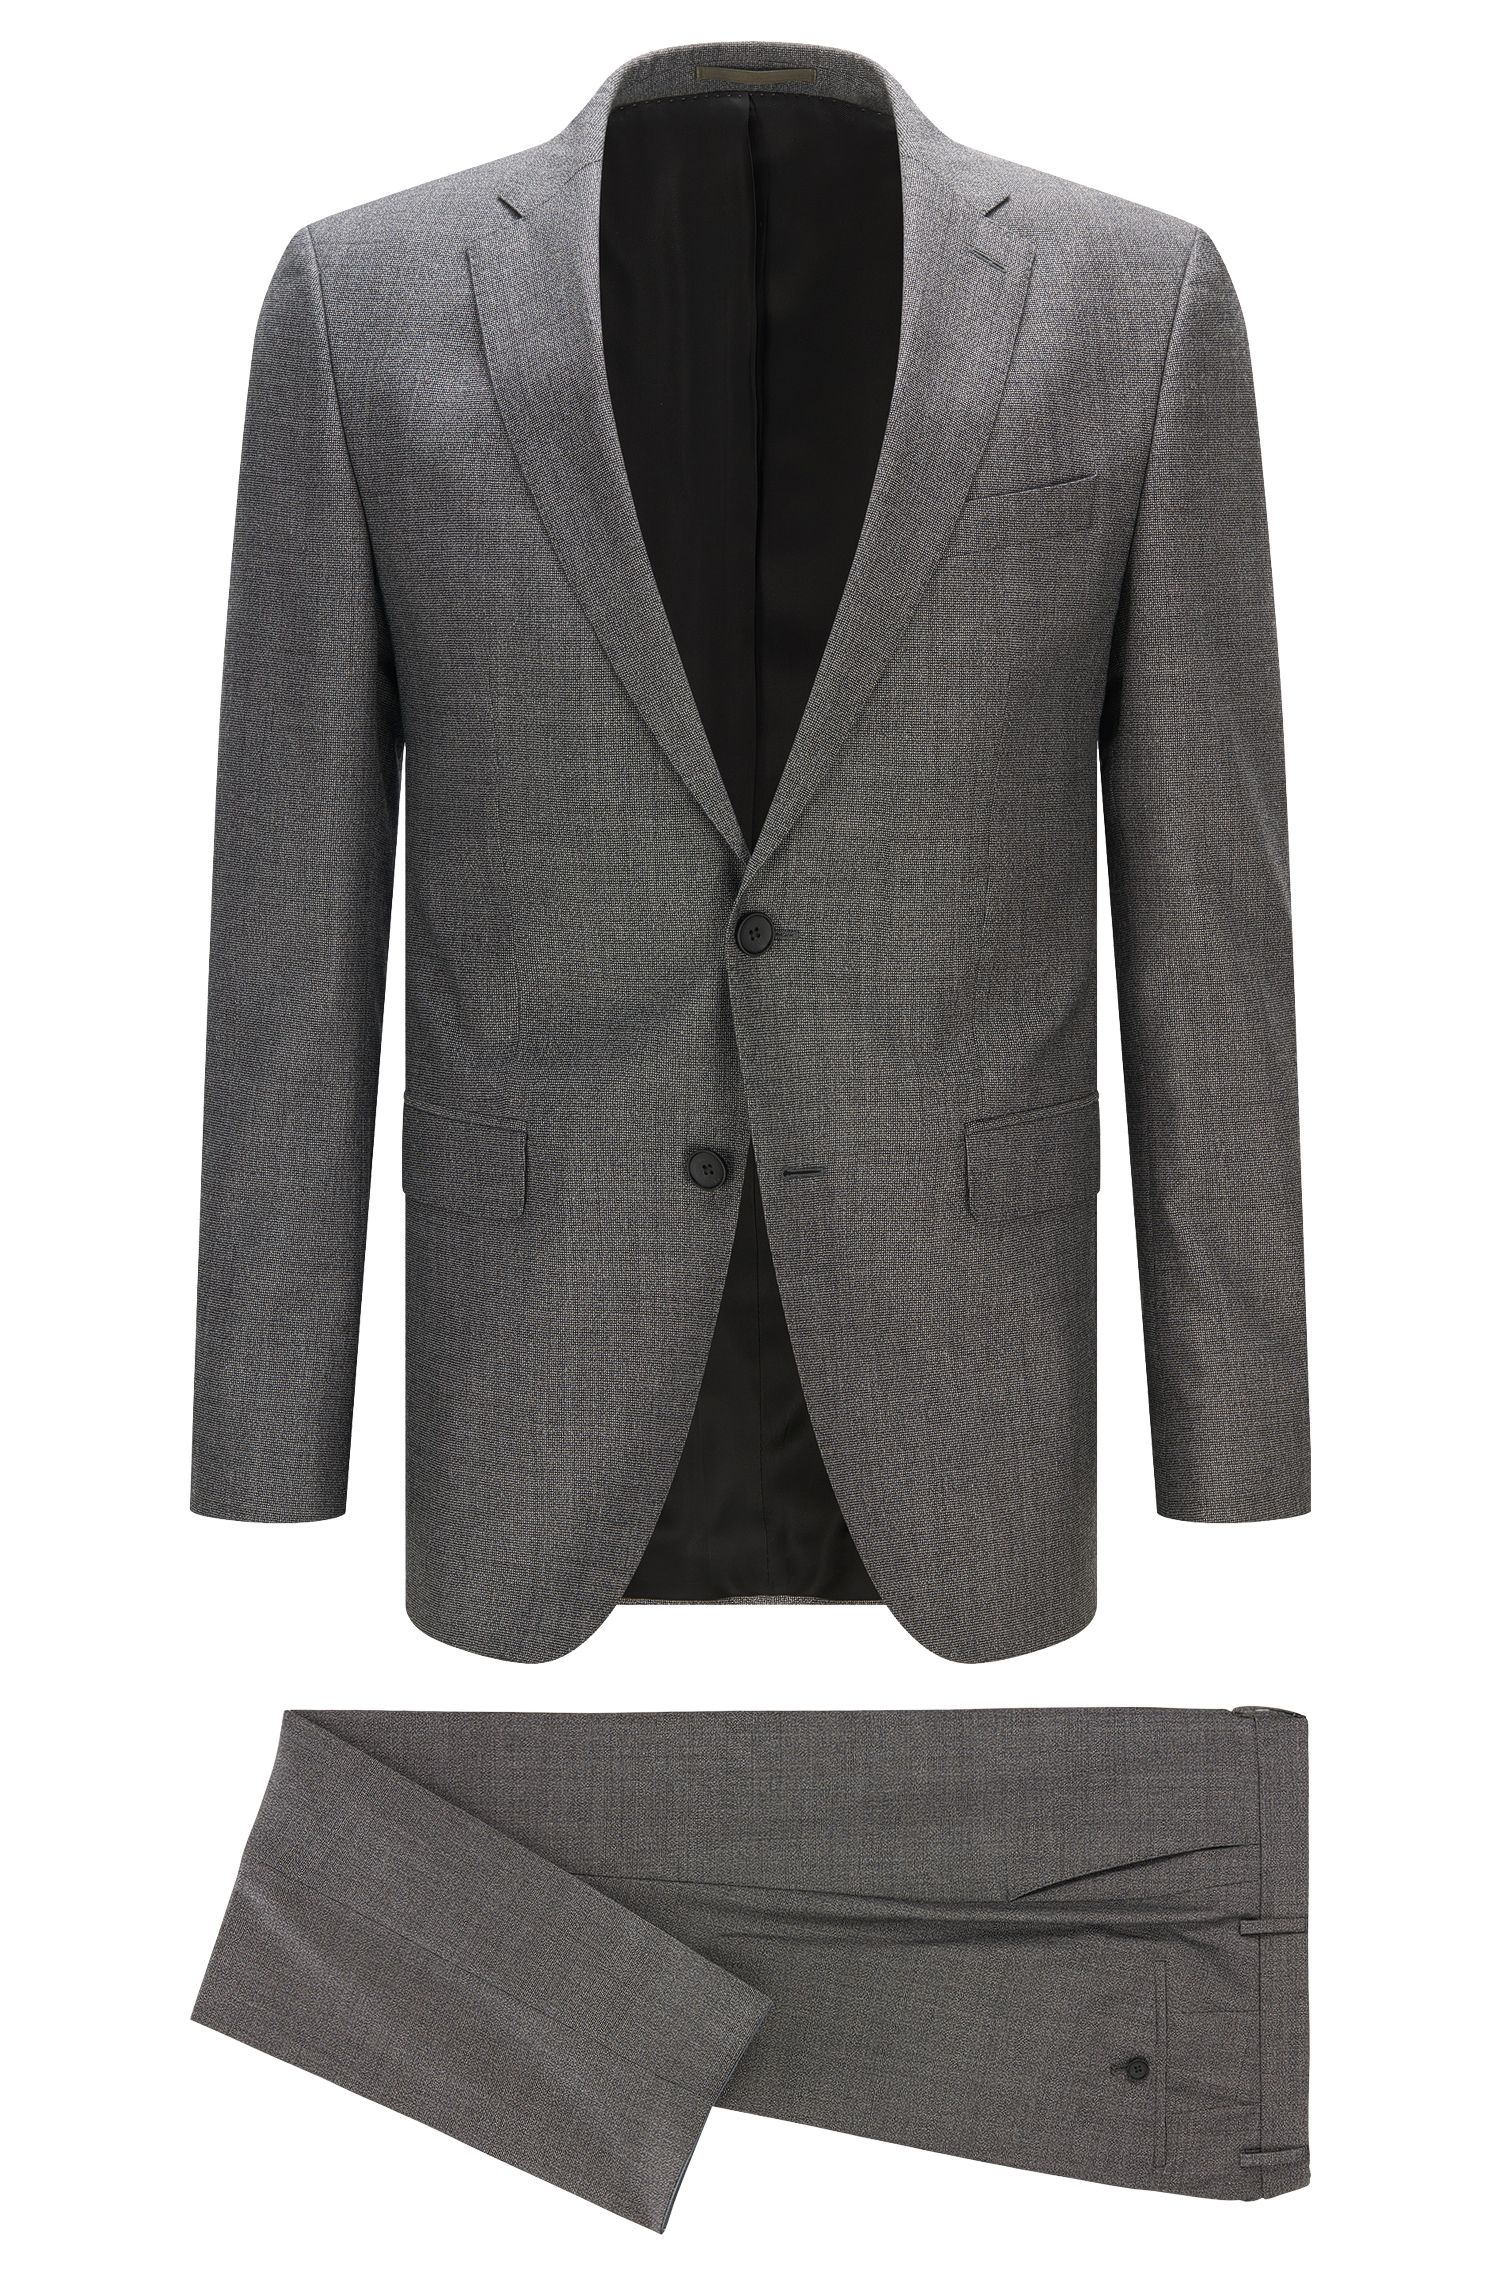 Virgin Wool Blend Suit, Slim Fit | Novan/Ben